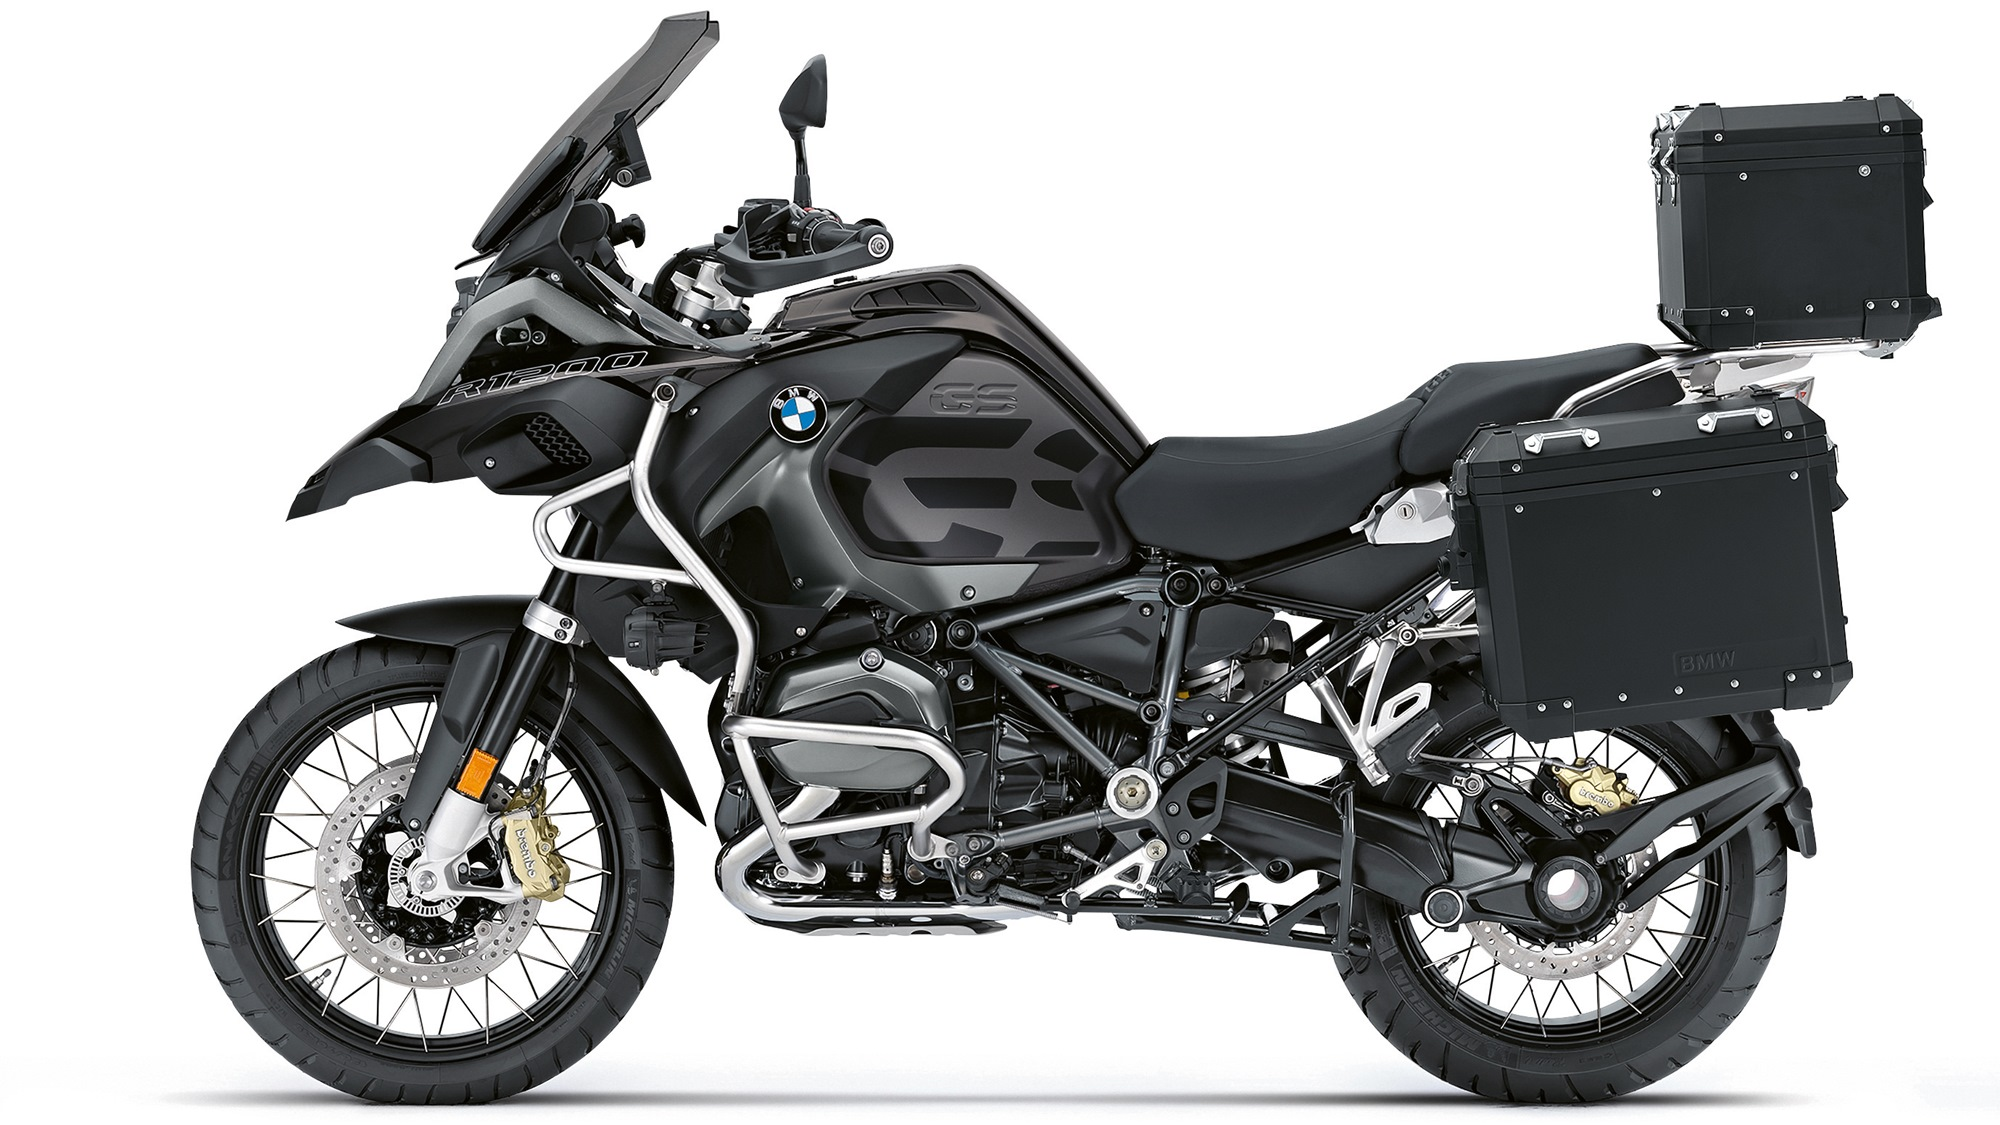 edition black accessories for bmw r 1200 gs and r 1200 gs. Black Bedroom Furniture Sets. Home Design Ideas